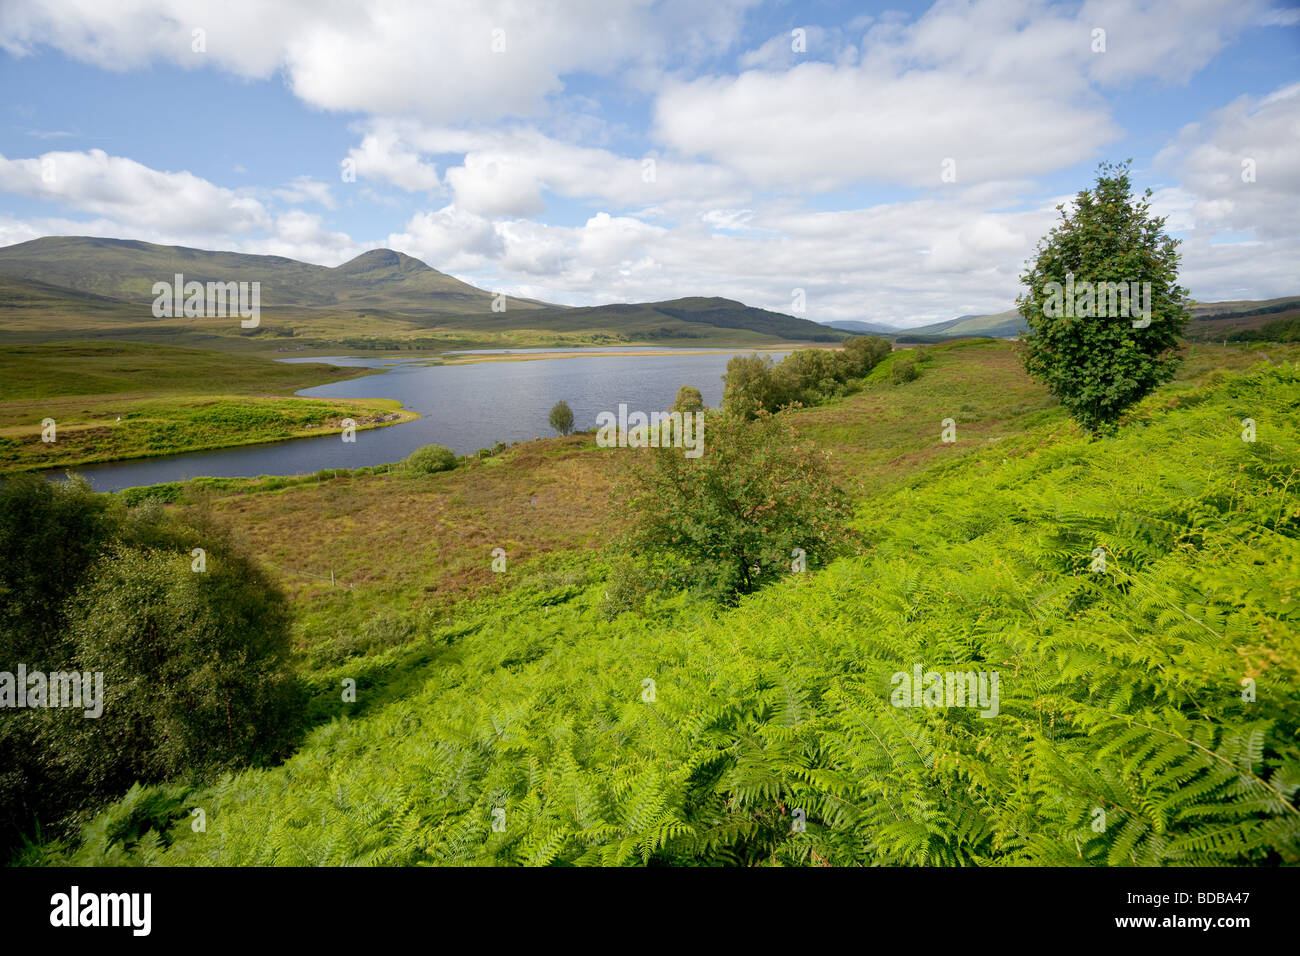 Loch Luichart in the Highlands of Scotland - Stock Image